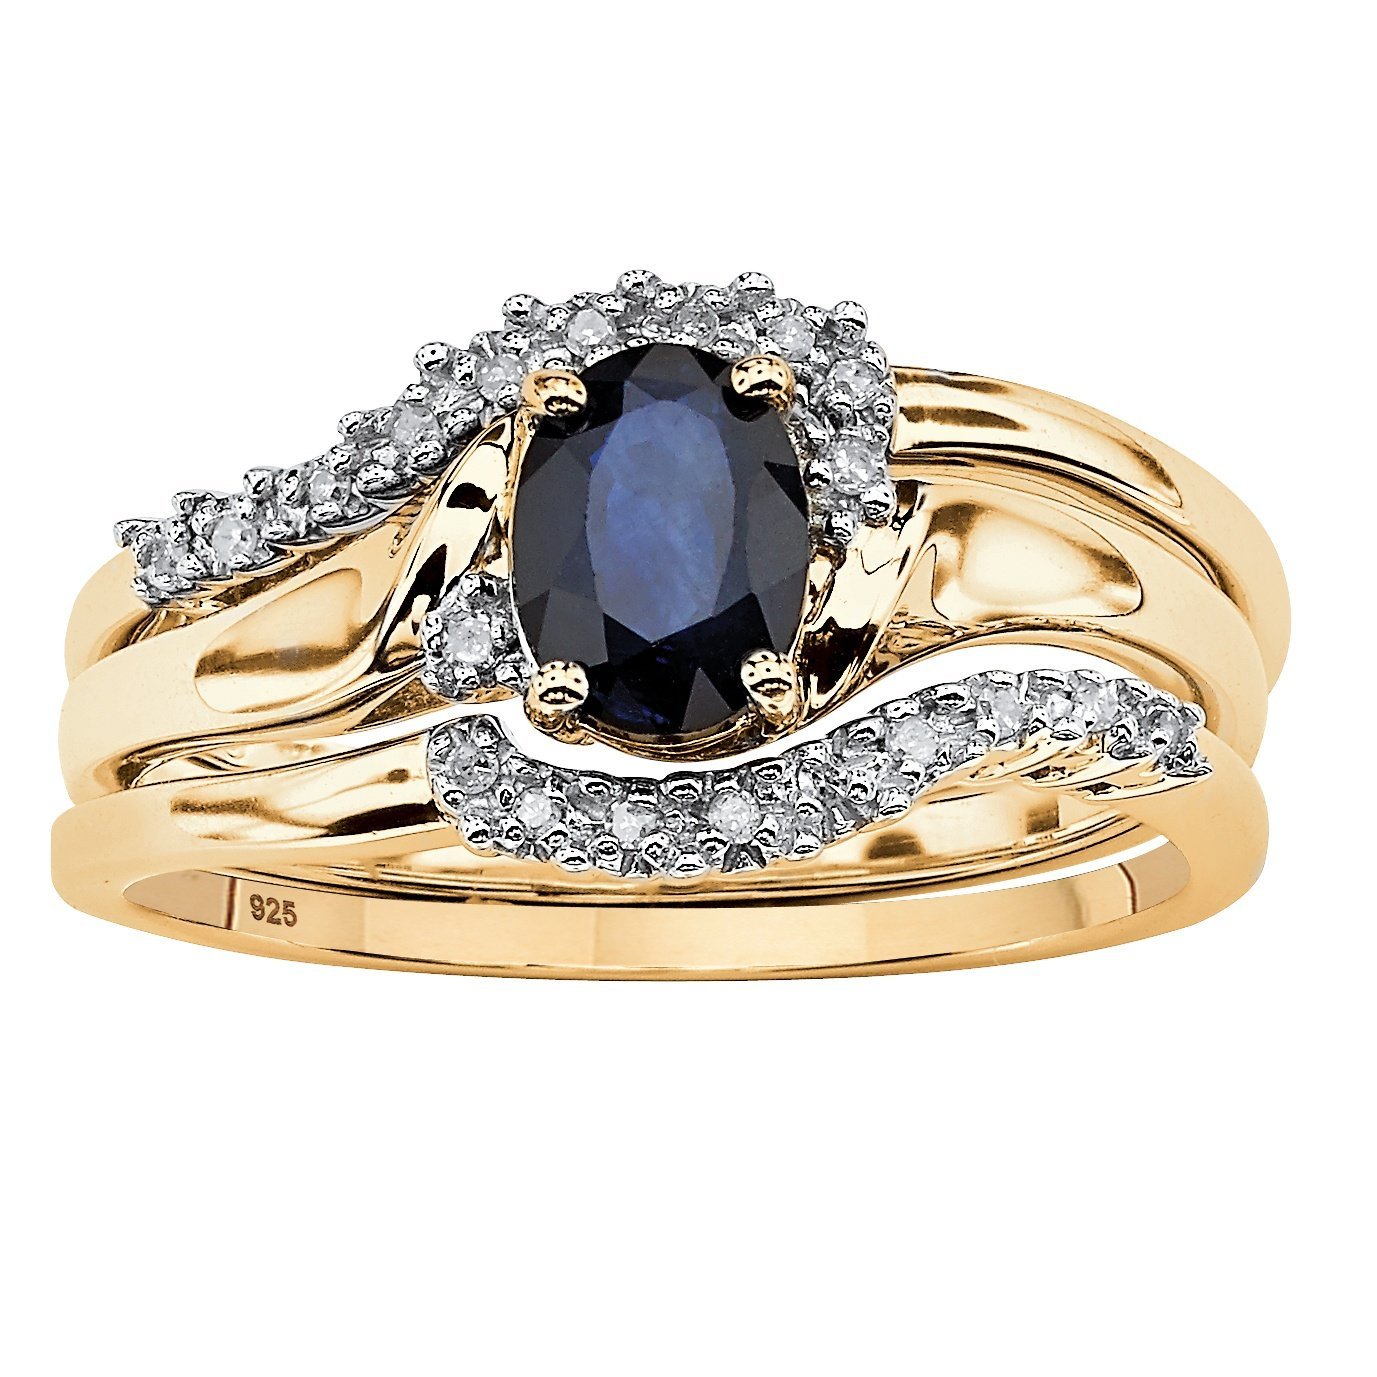 Genuine Midnight Blue Sapphire 18k Gold over .925 Sterling Silver 3-Piece Bypass Bridal Ring Set